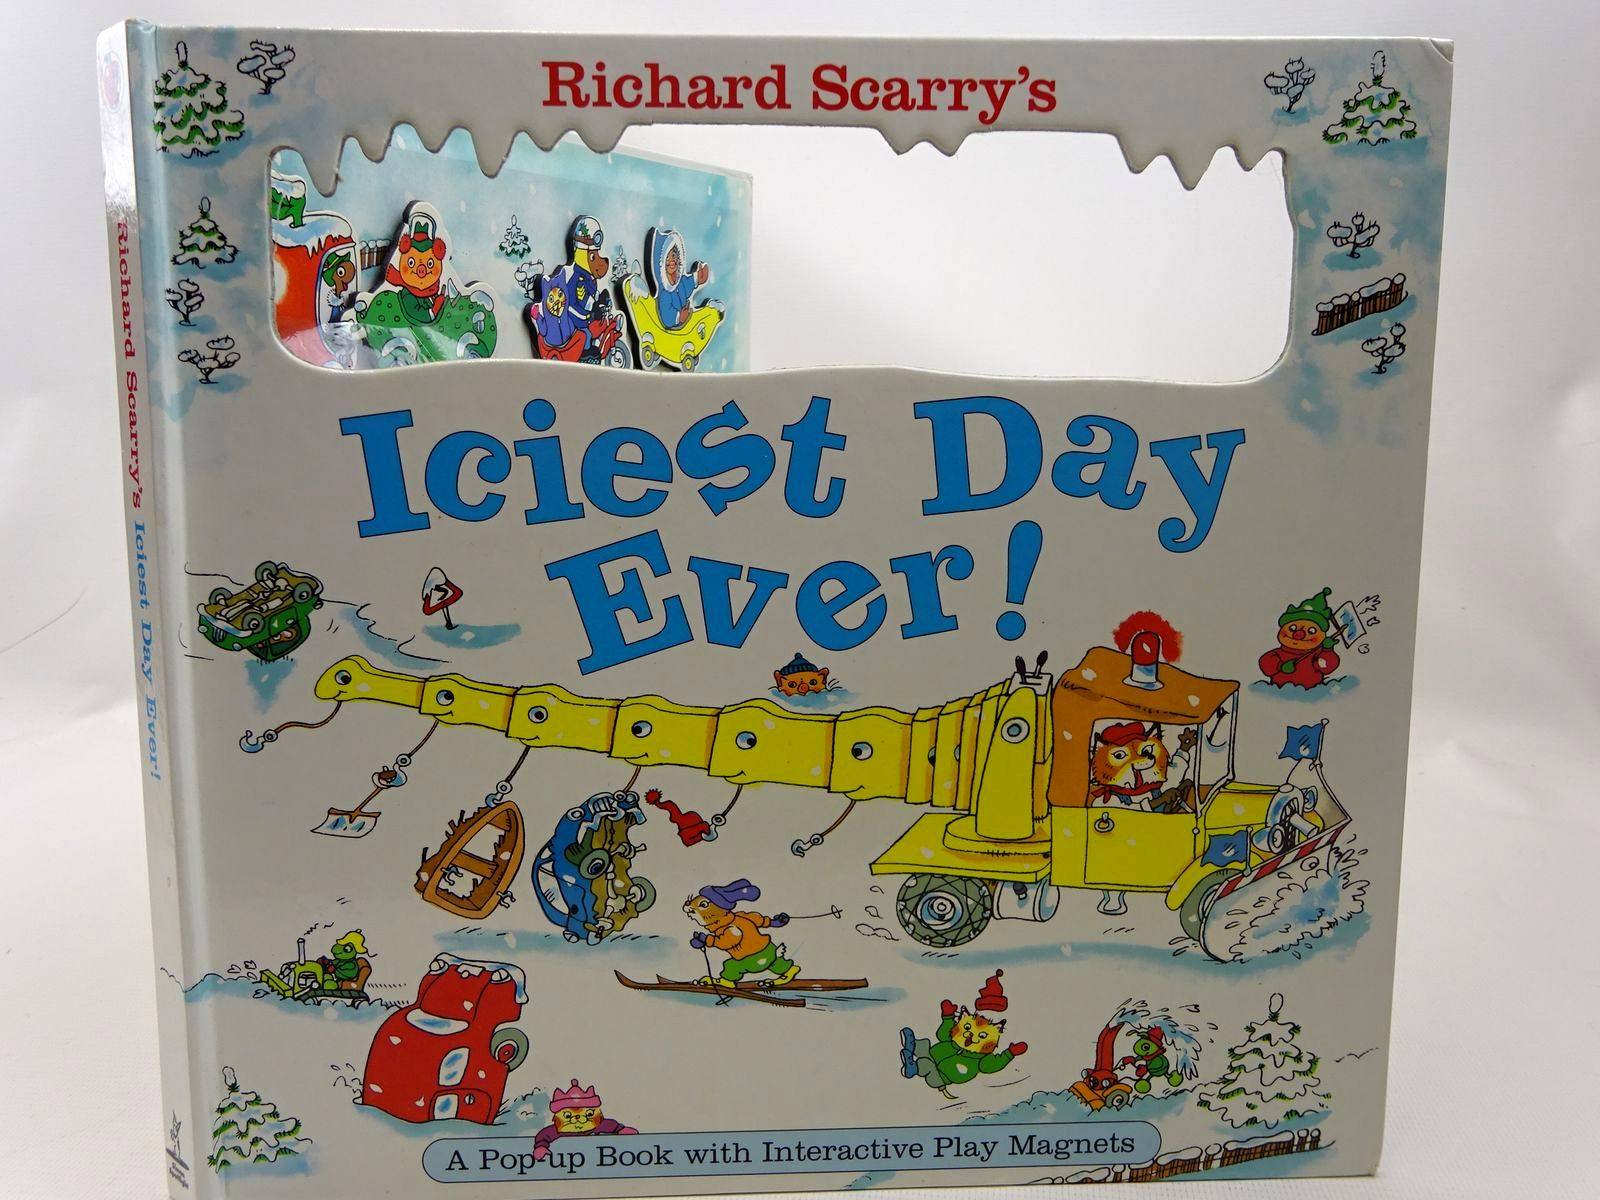 Photo of RICHARD SCARRY'S ICIEST DAY EVER! written by Scarry, Richard illustrated by Scarry, Richard published by Simon Spotlight (STOCK CODE: 2126596)  for sale by Stella & Rose's Books